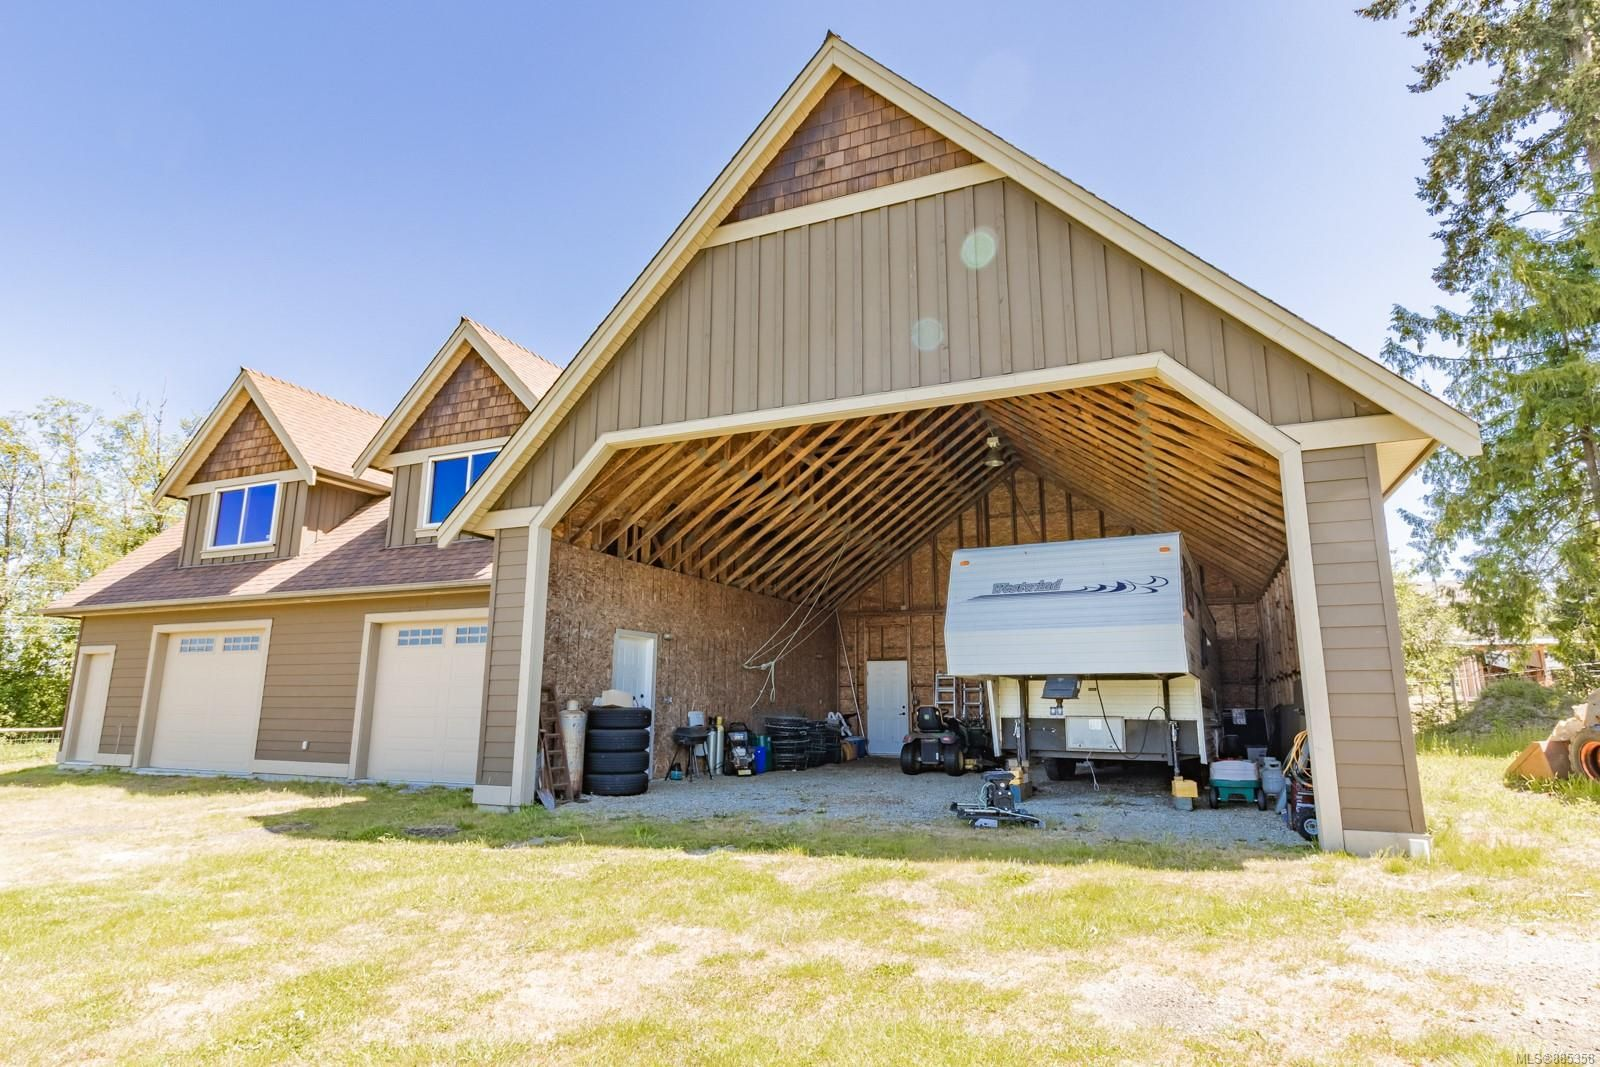 Photo 55: Photos: 2850 Peters Rd in : PQ Qualicum Beach House for sale (Parksville/Qualicum)  : MLS®# 885358